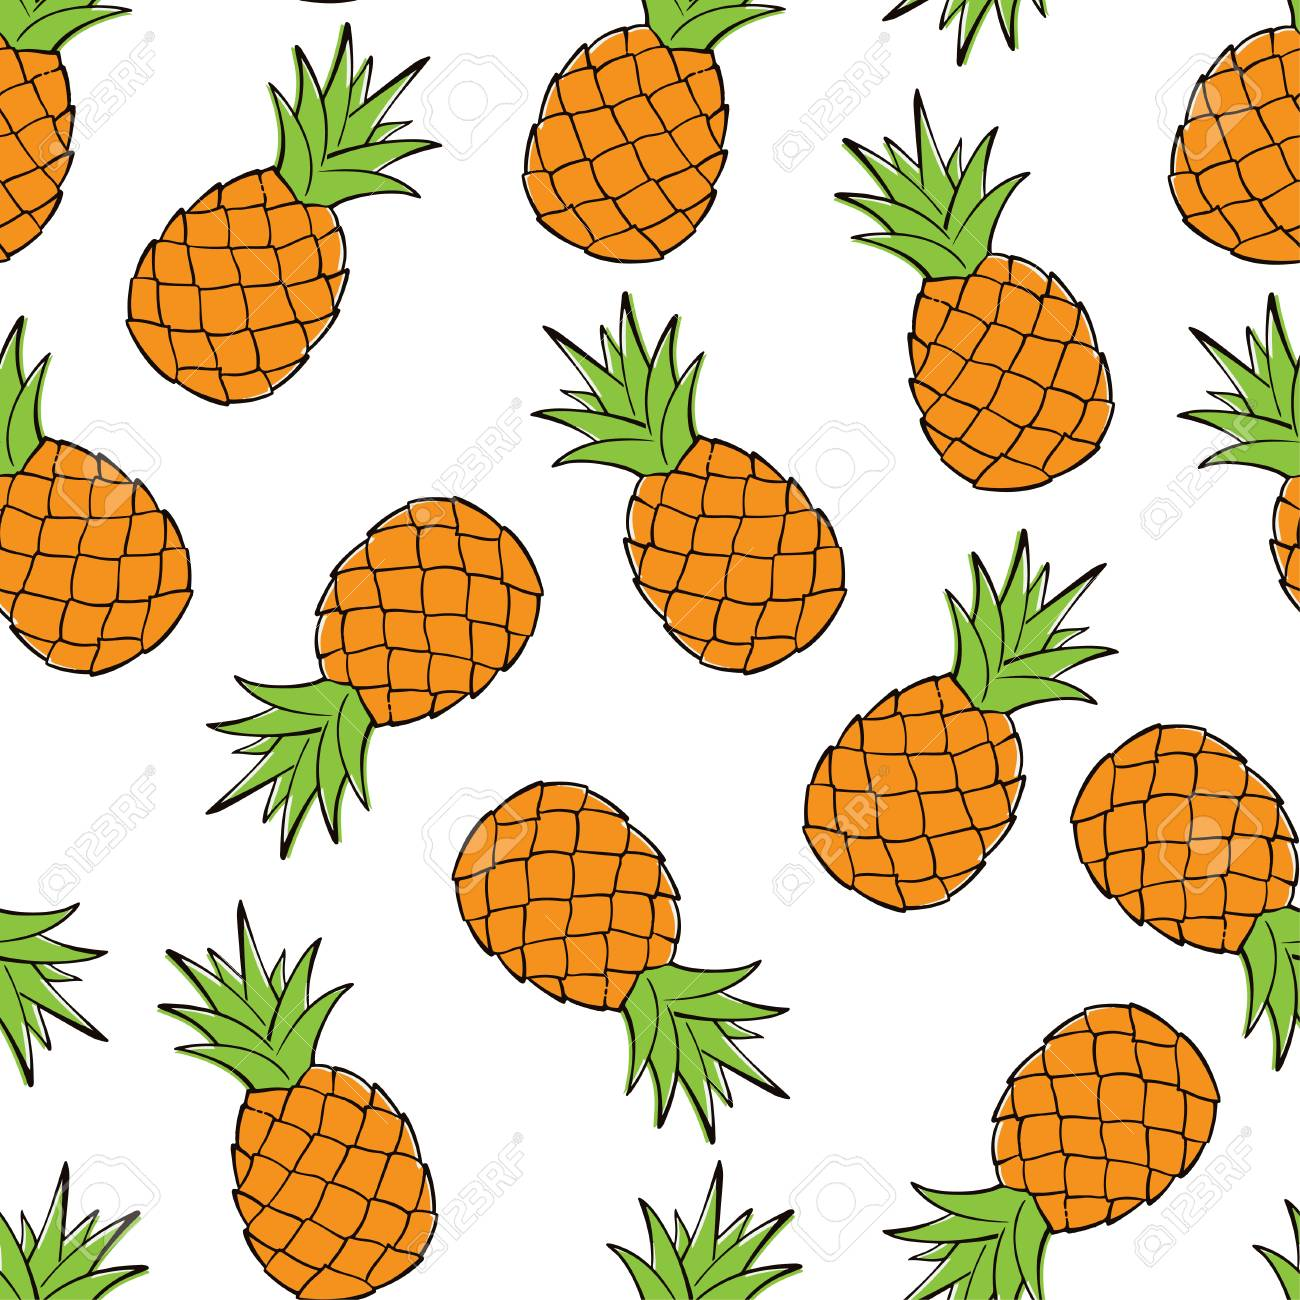 Seamless Pattern Of Pineapples Vector Illustration Food 1300x1300